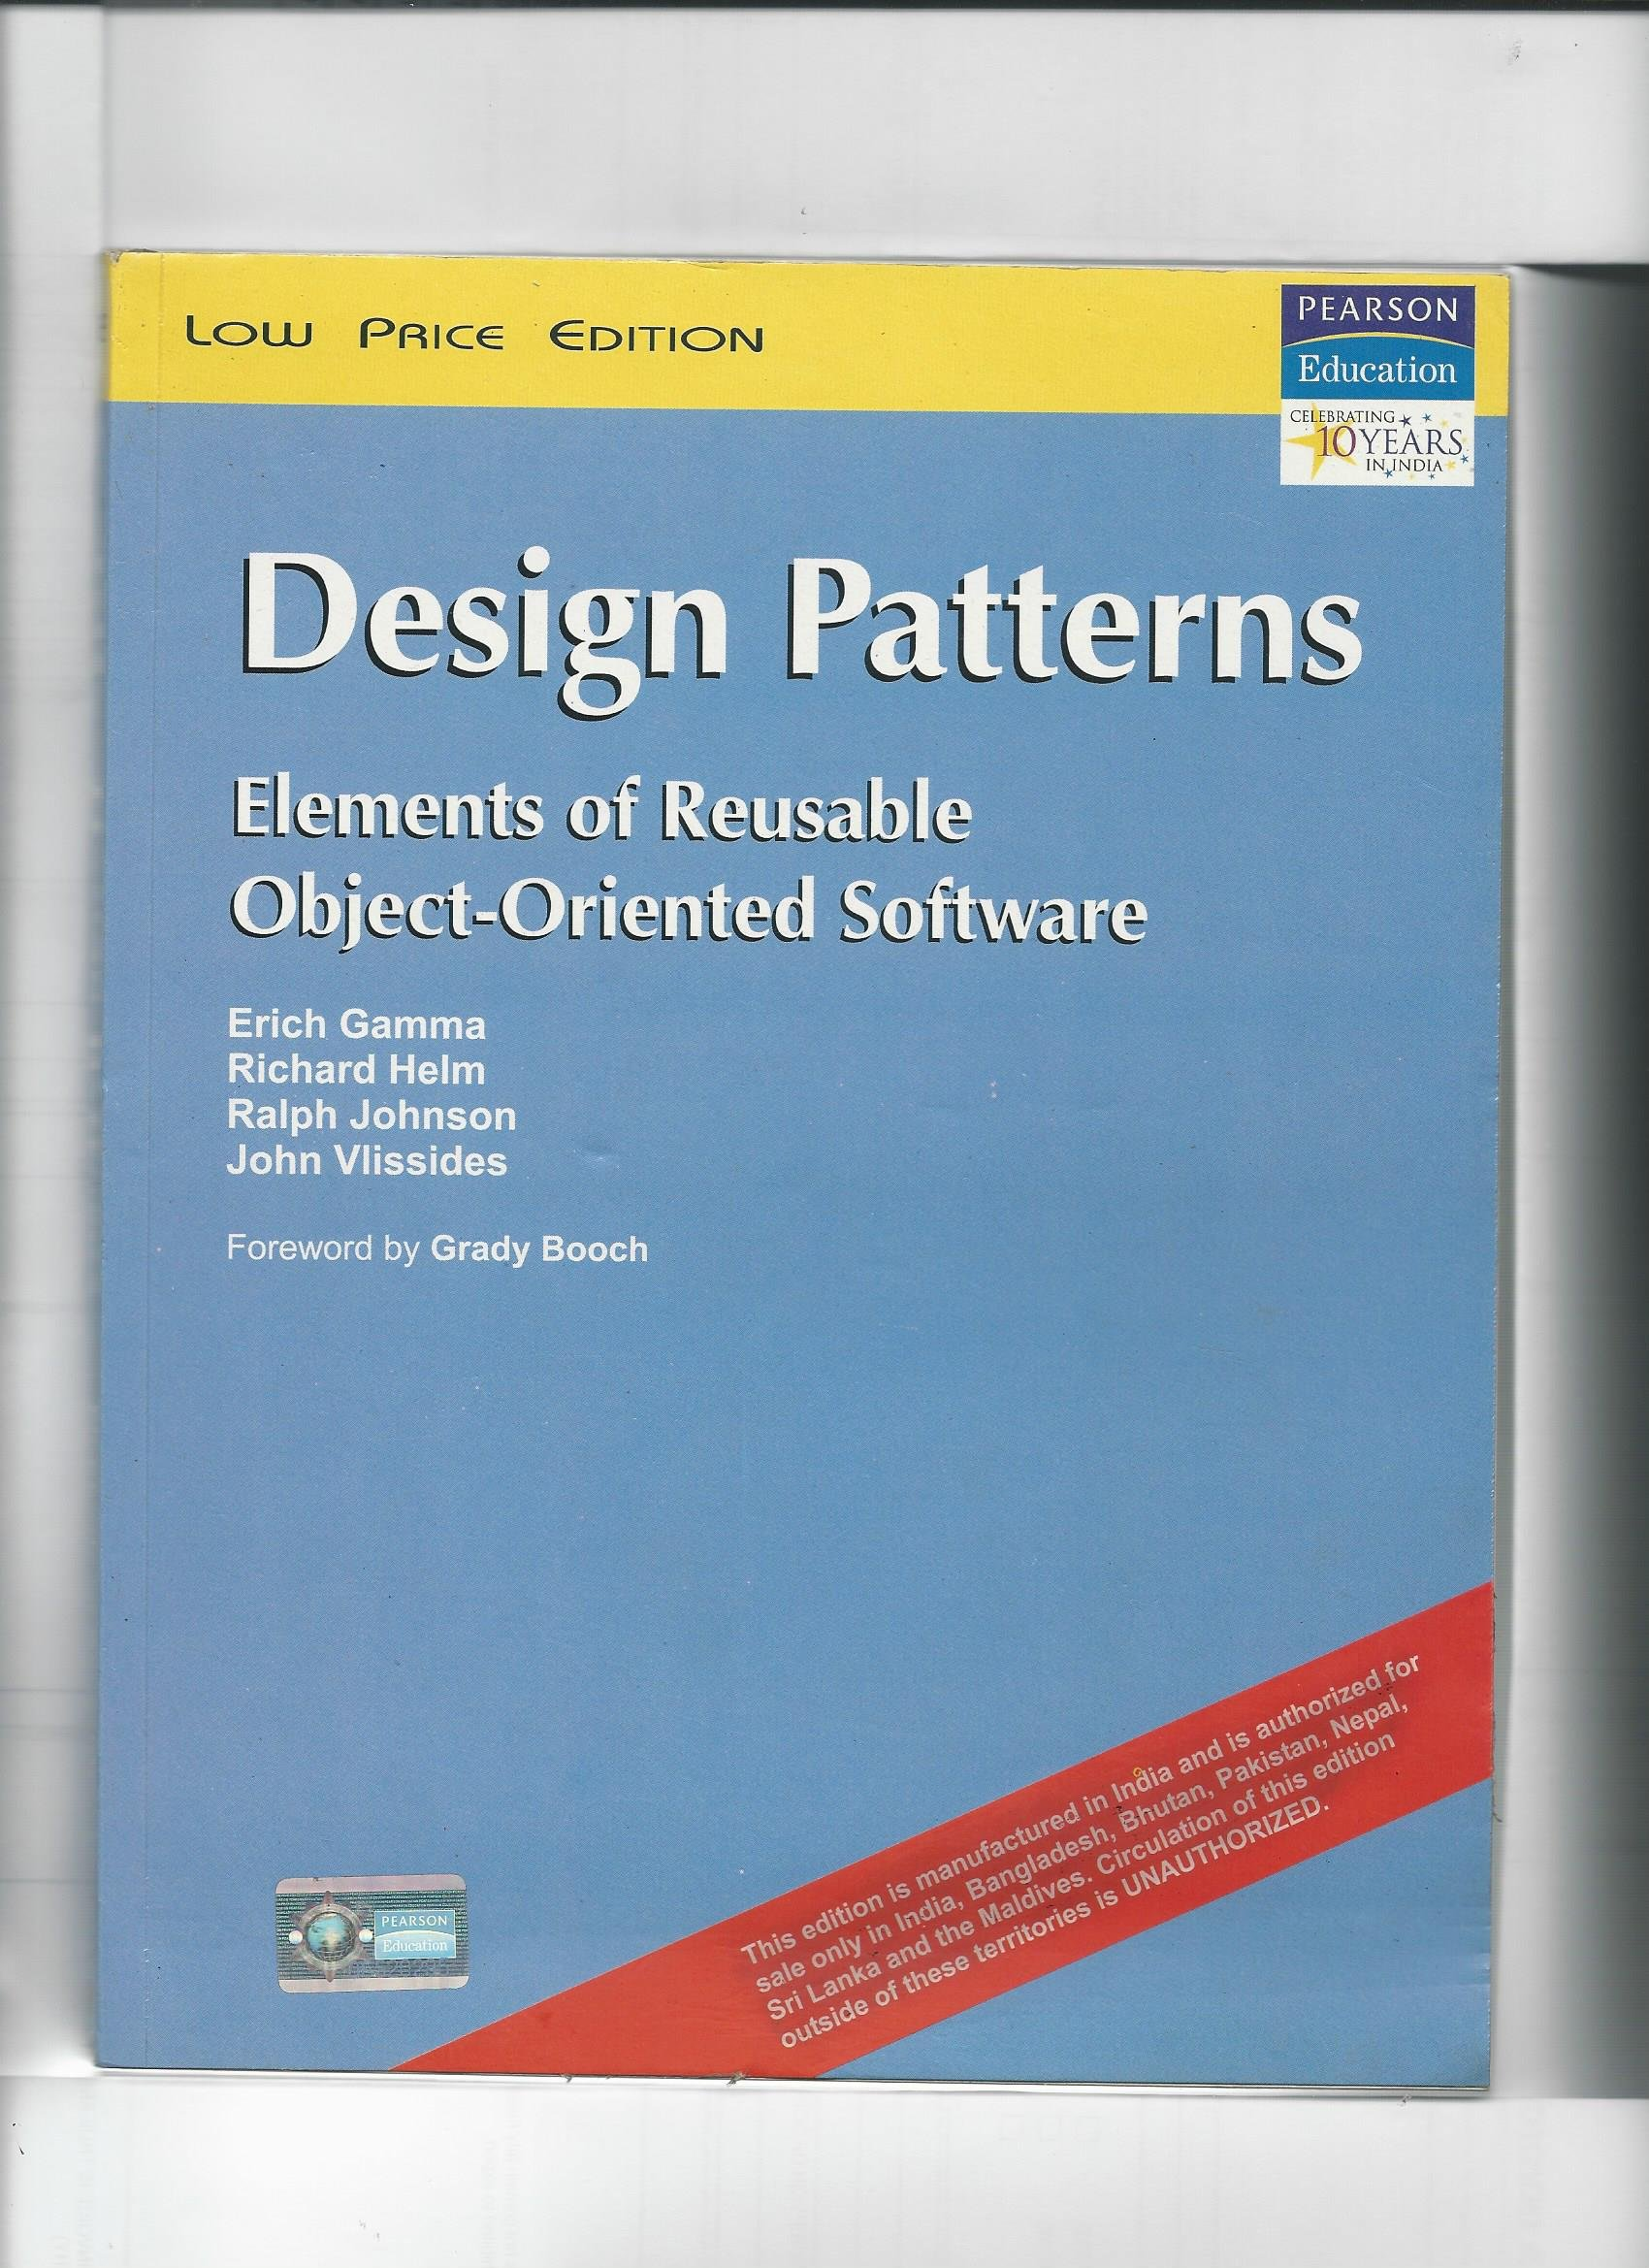 Buy Design Patterns Elements Of Reusable Object Oriented Software Old Edition Book Online At Low Prices In India Design Patterns Elements Of Reusable Object Oriented Software Old Edition Reviews